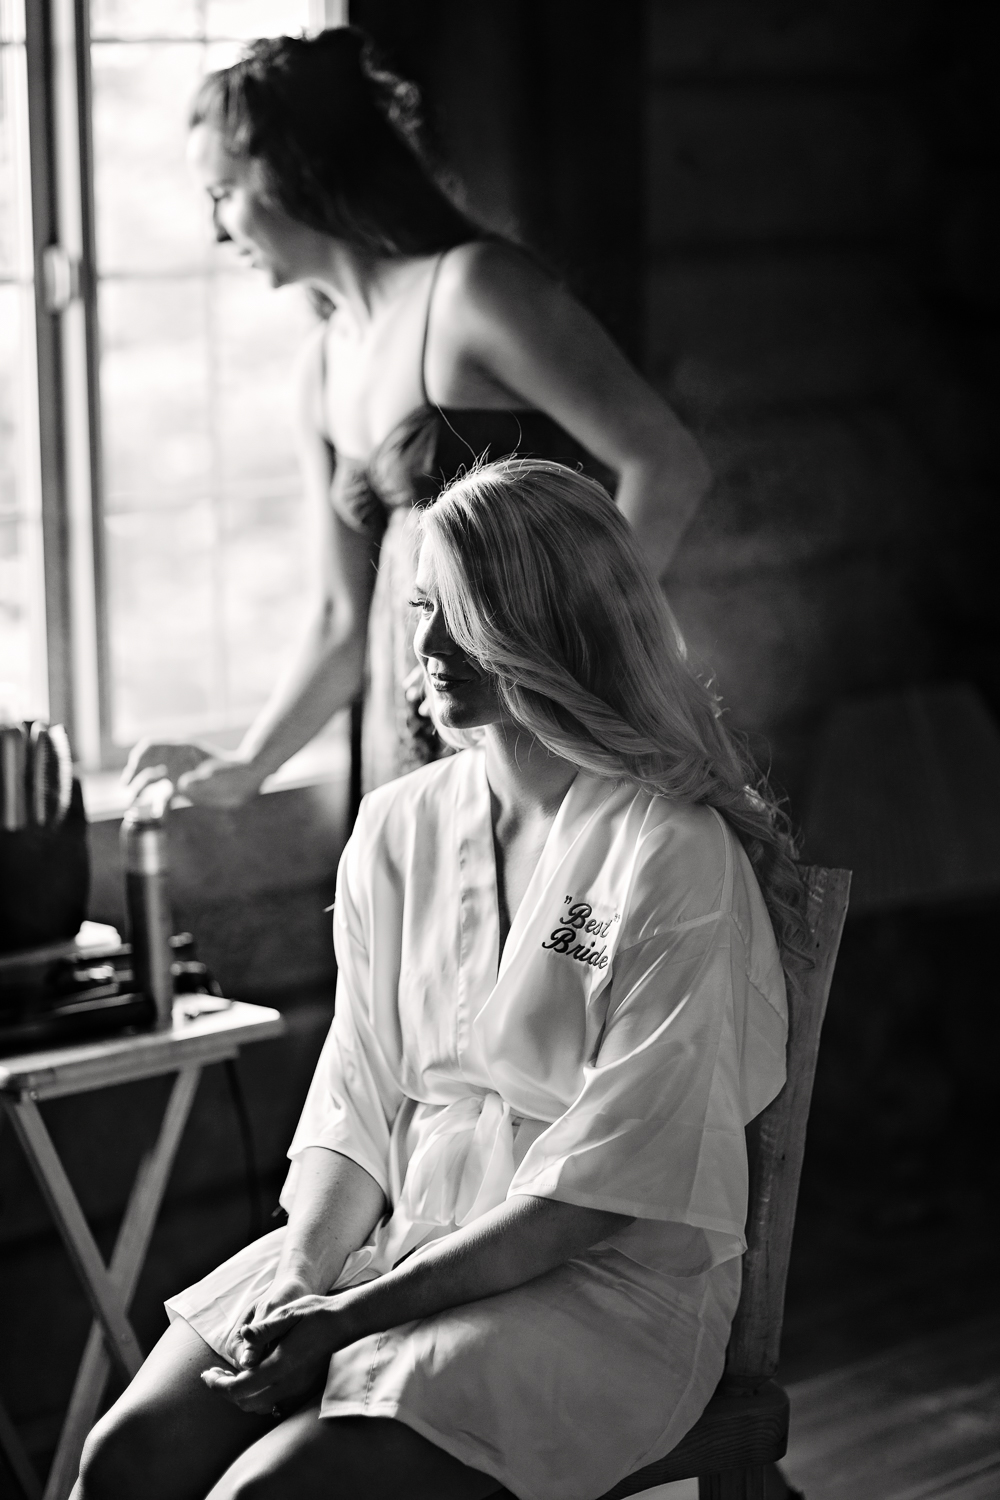 bozeman-montana-wedding-roys-barn-hairstylist-fixes-brides-hair.jpg